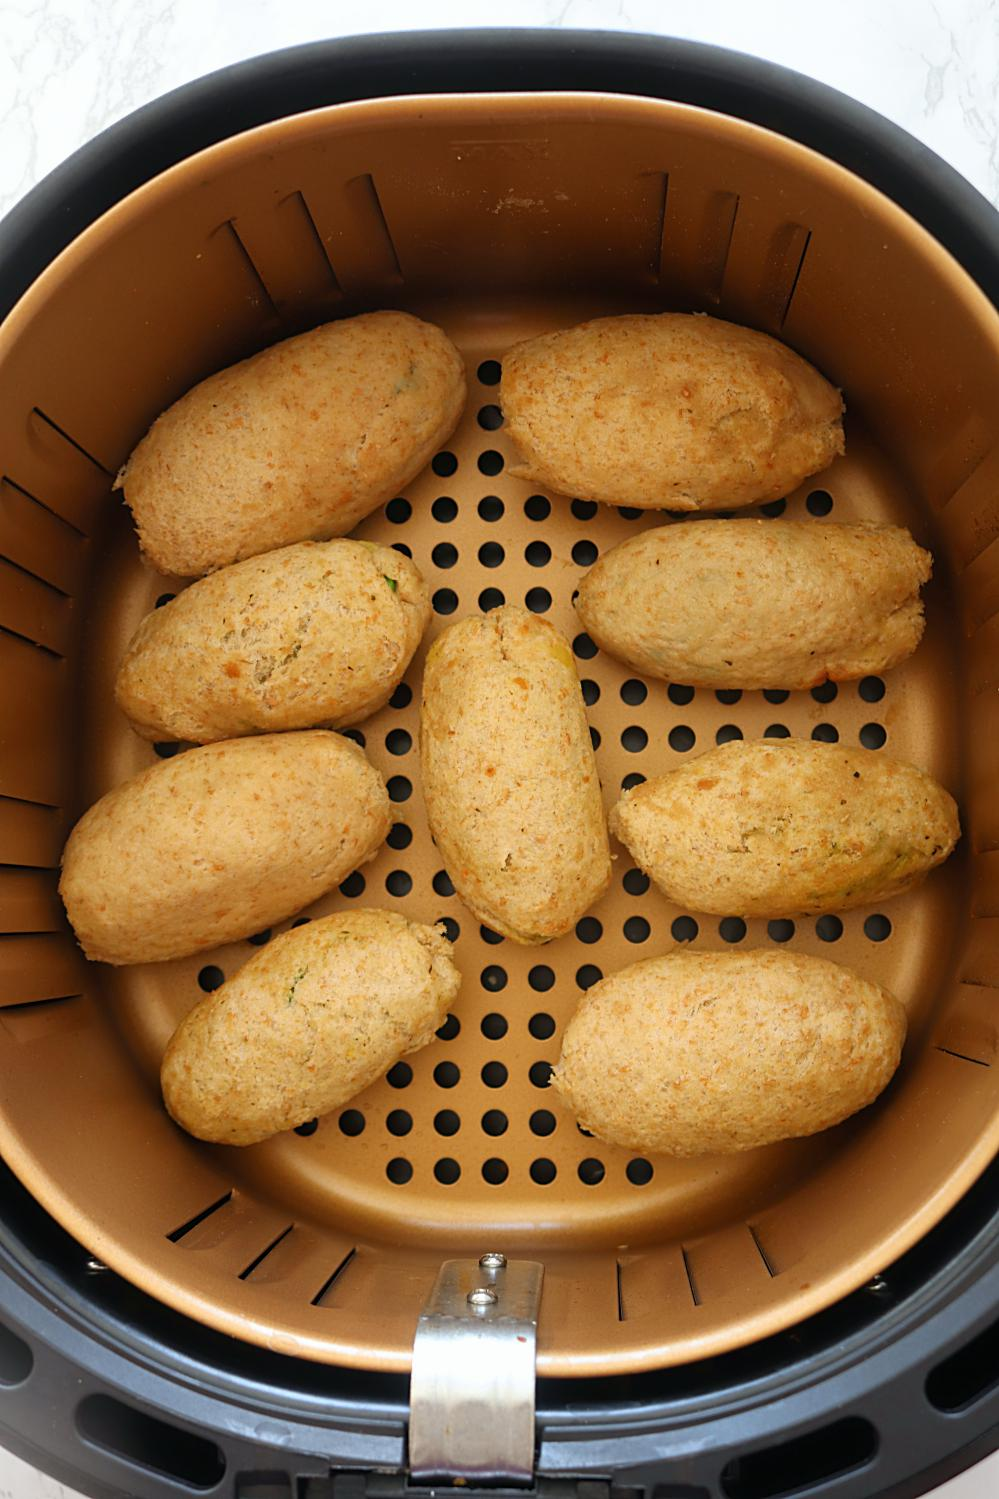 Air fryer baked Bread Rolls